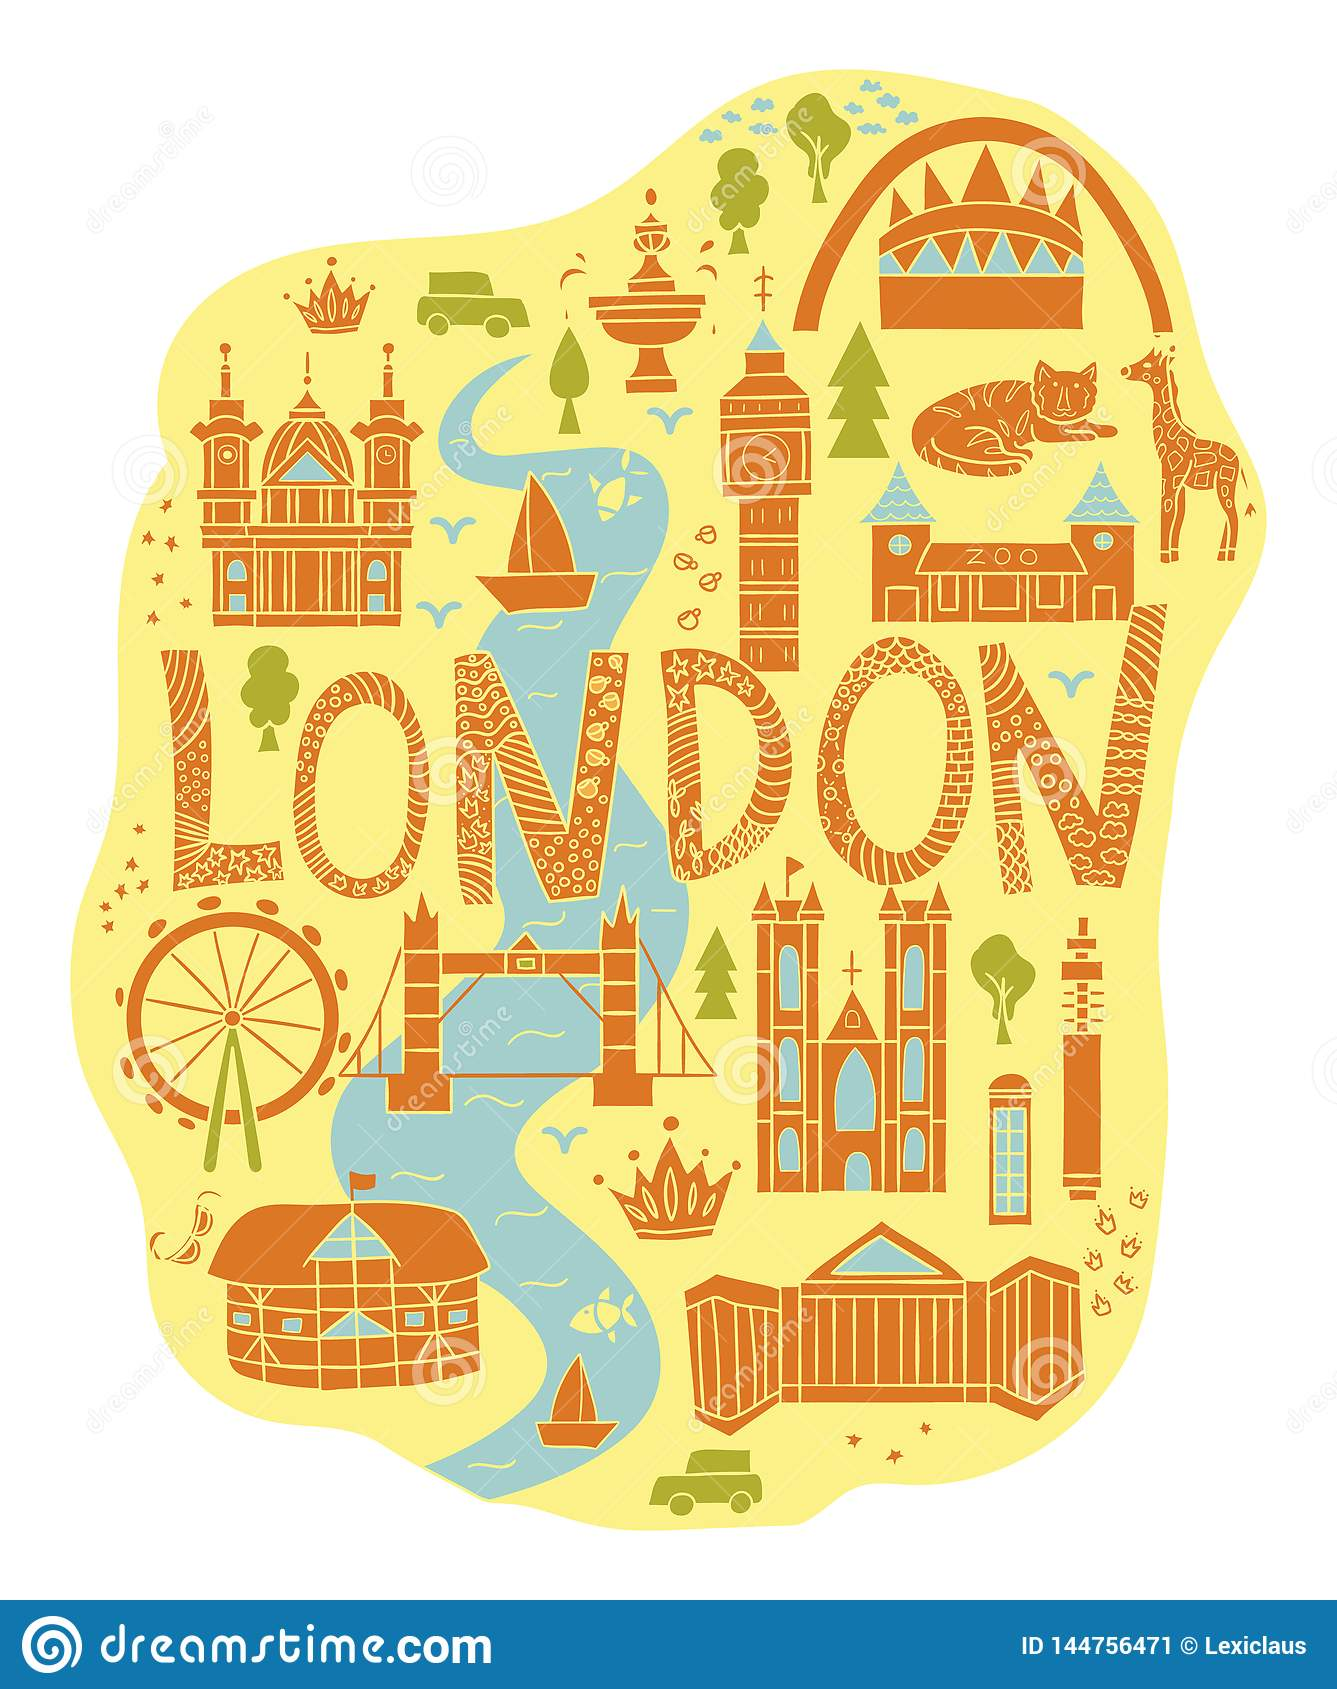 Map Of London With Attractions.Hand Drawn Map Of London In Cartoon Style Stock Illustration